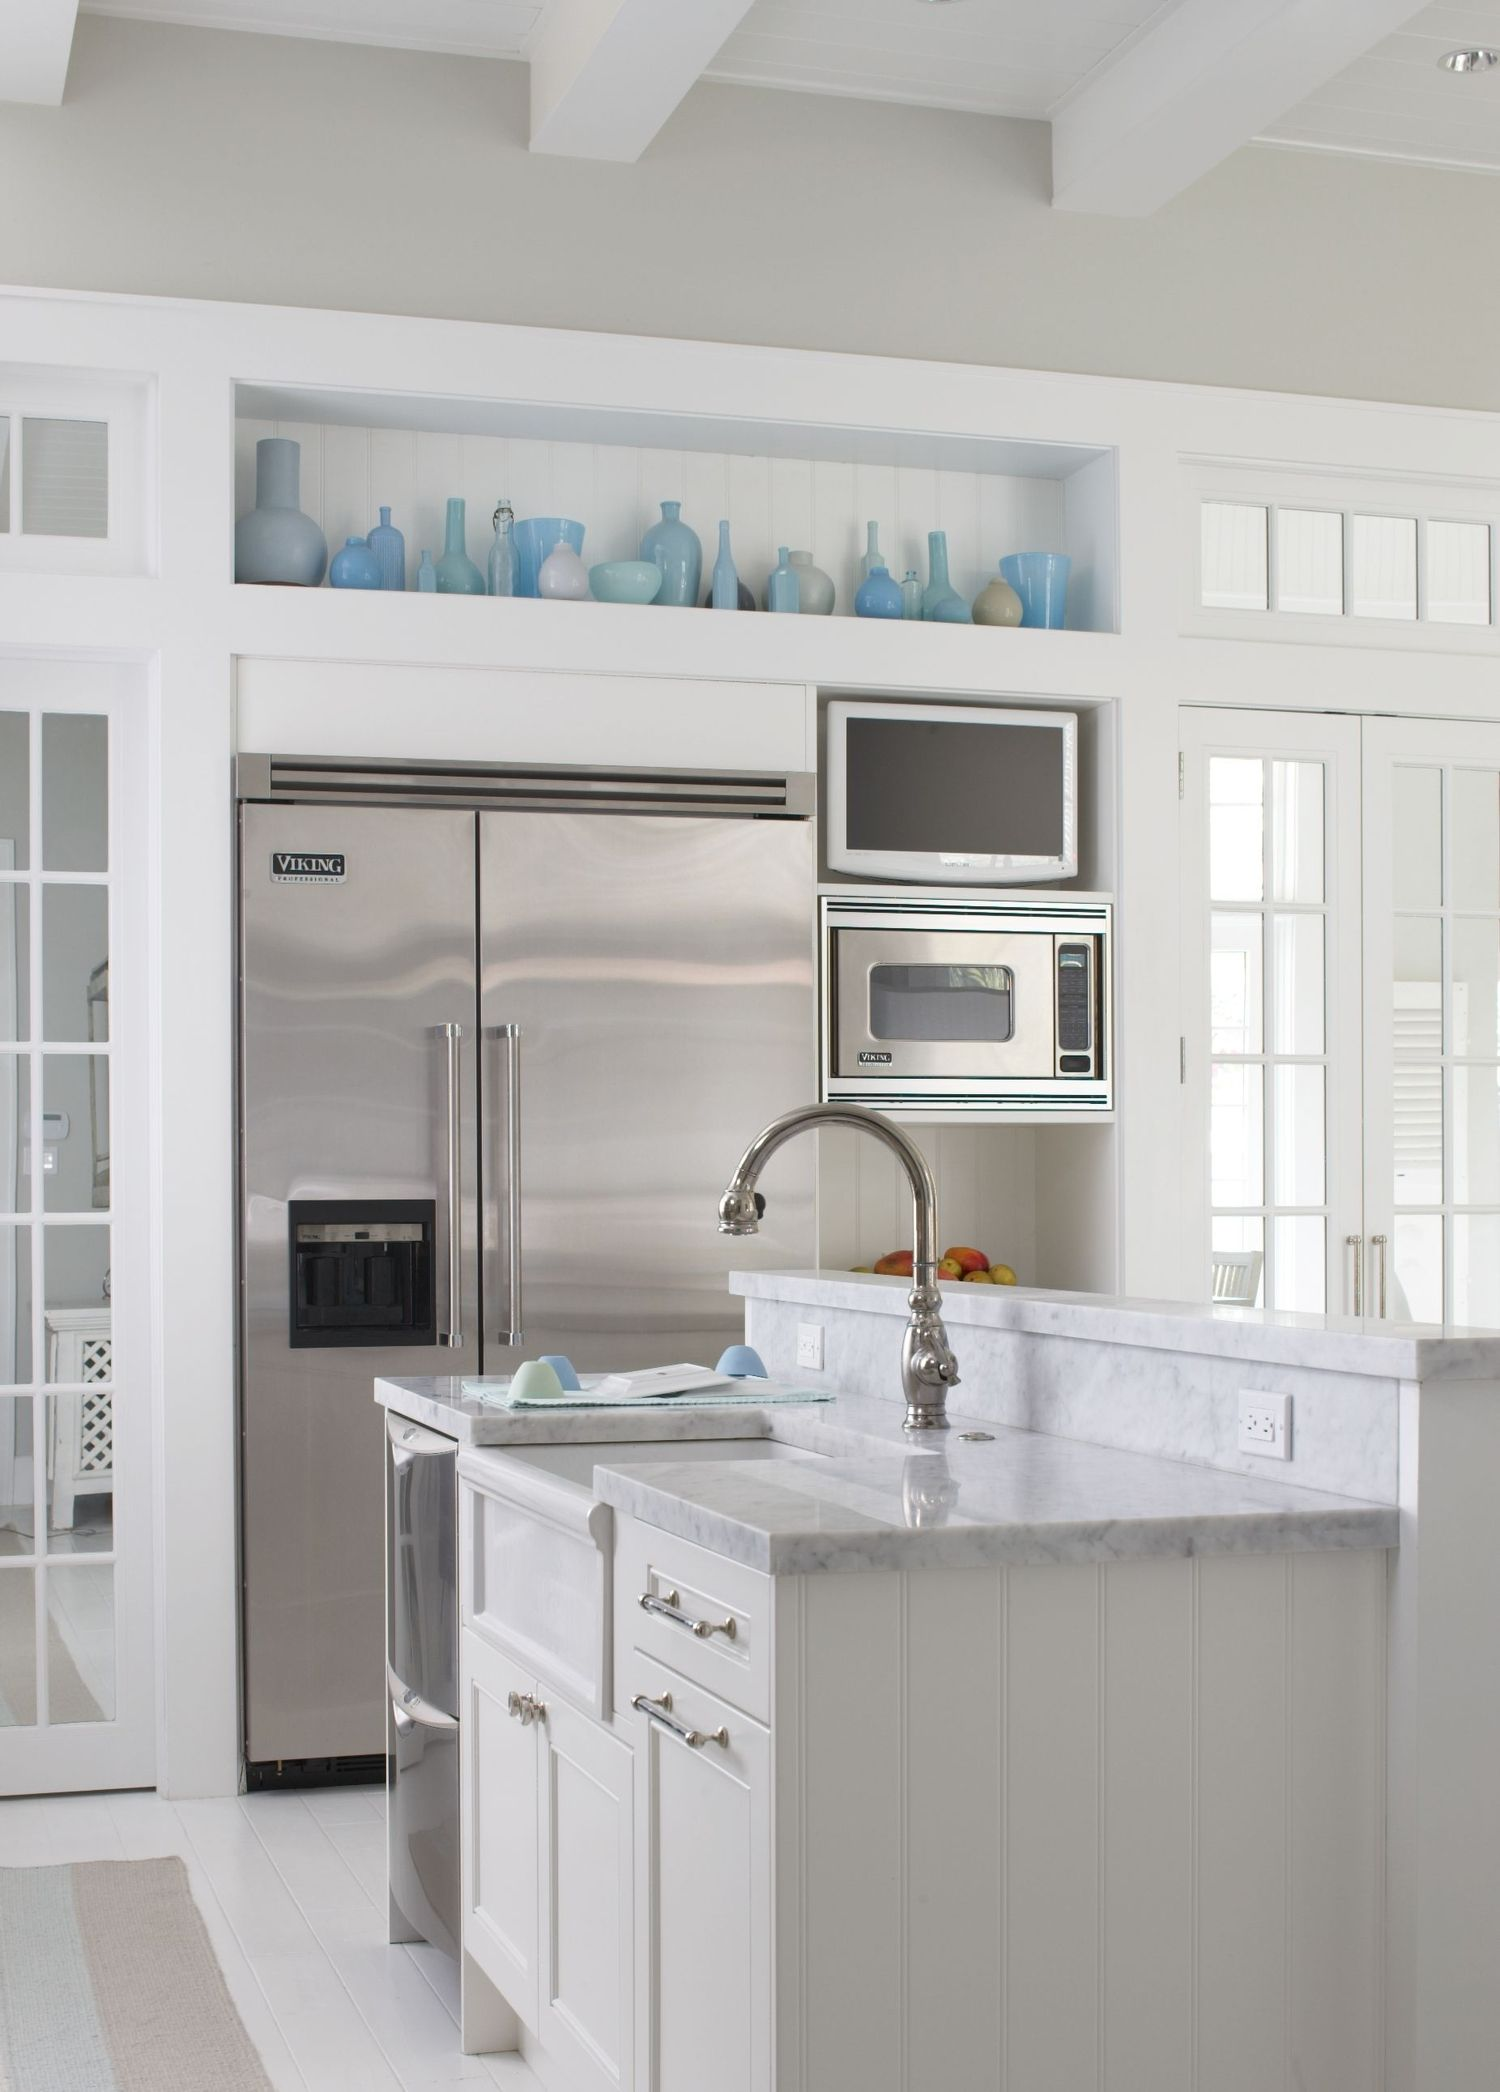 My Dream Kitchen Countertops : This is my dream kitchen the grey and white countertops